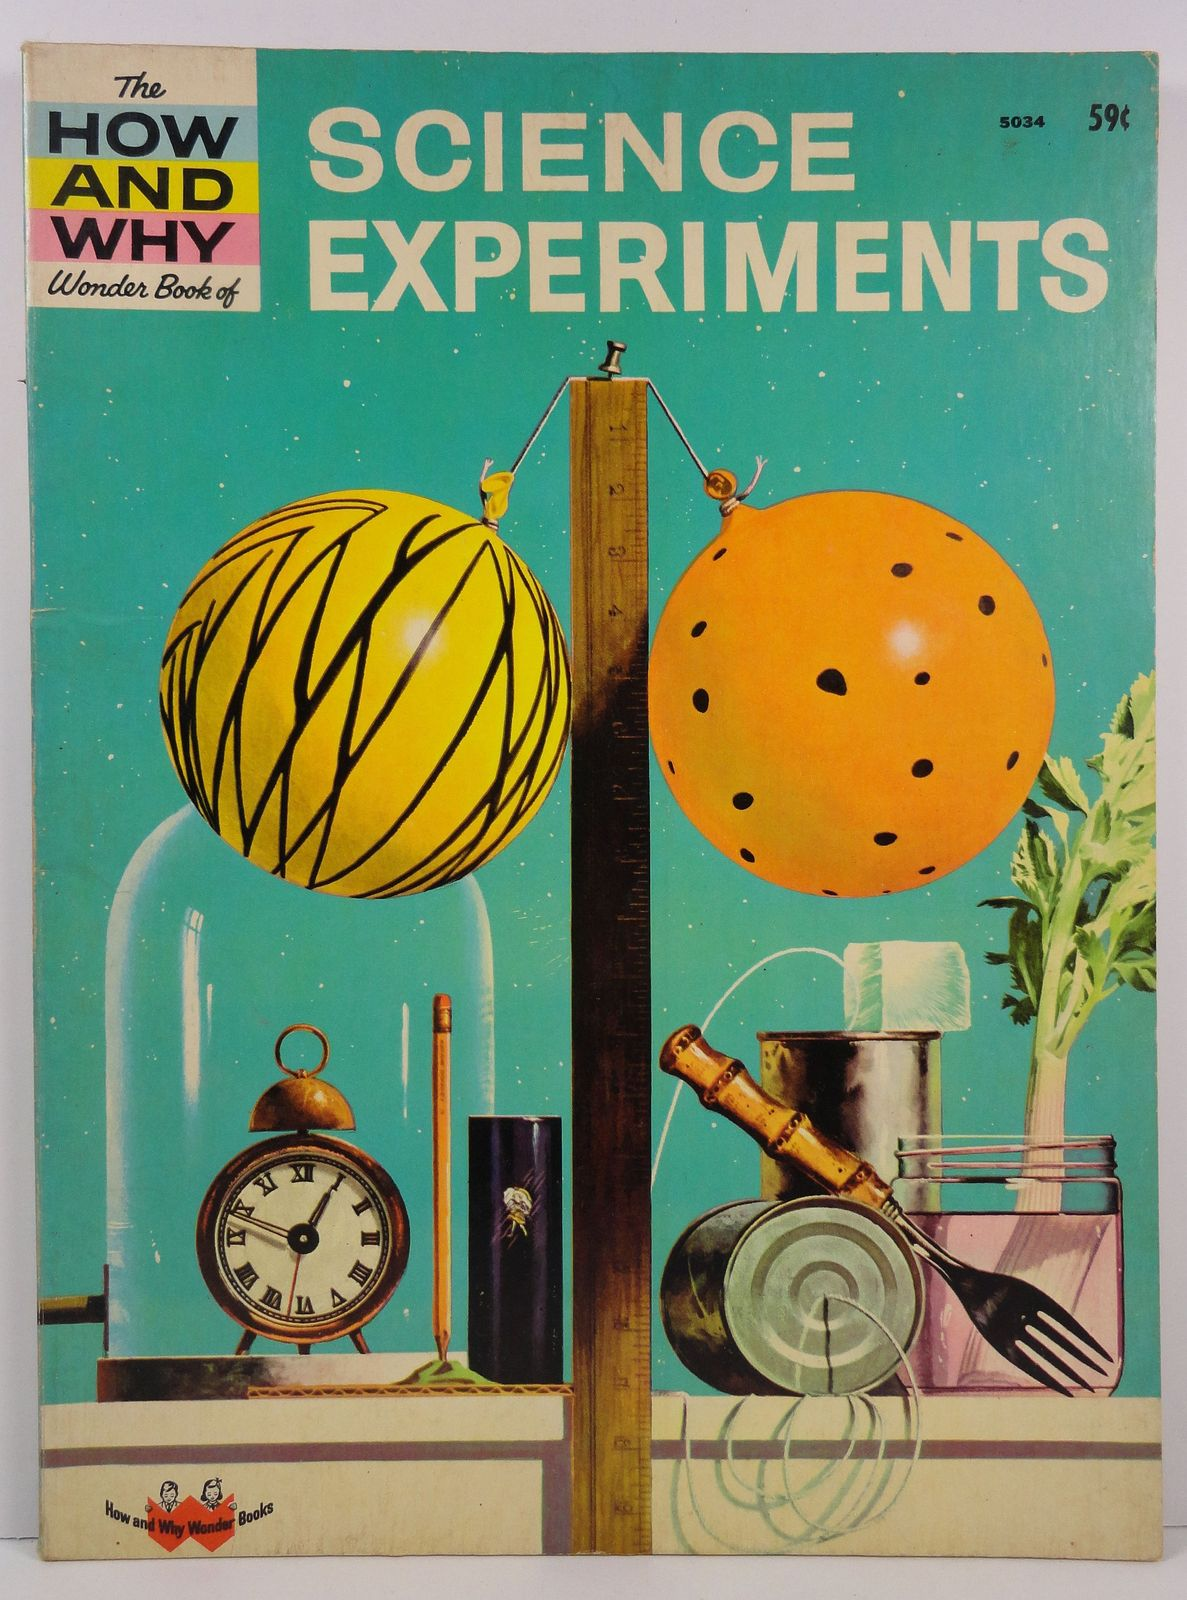 The How and Why Wonder Book of Science Experiments 1969